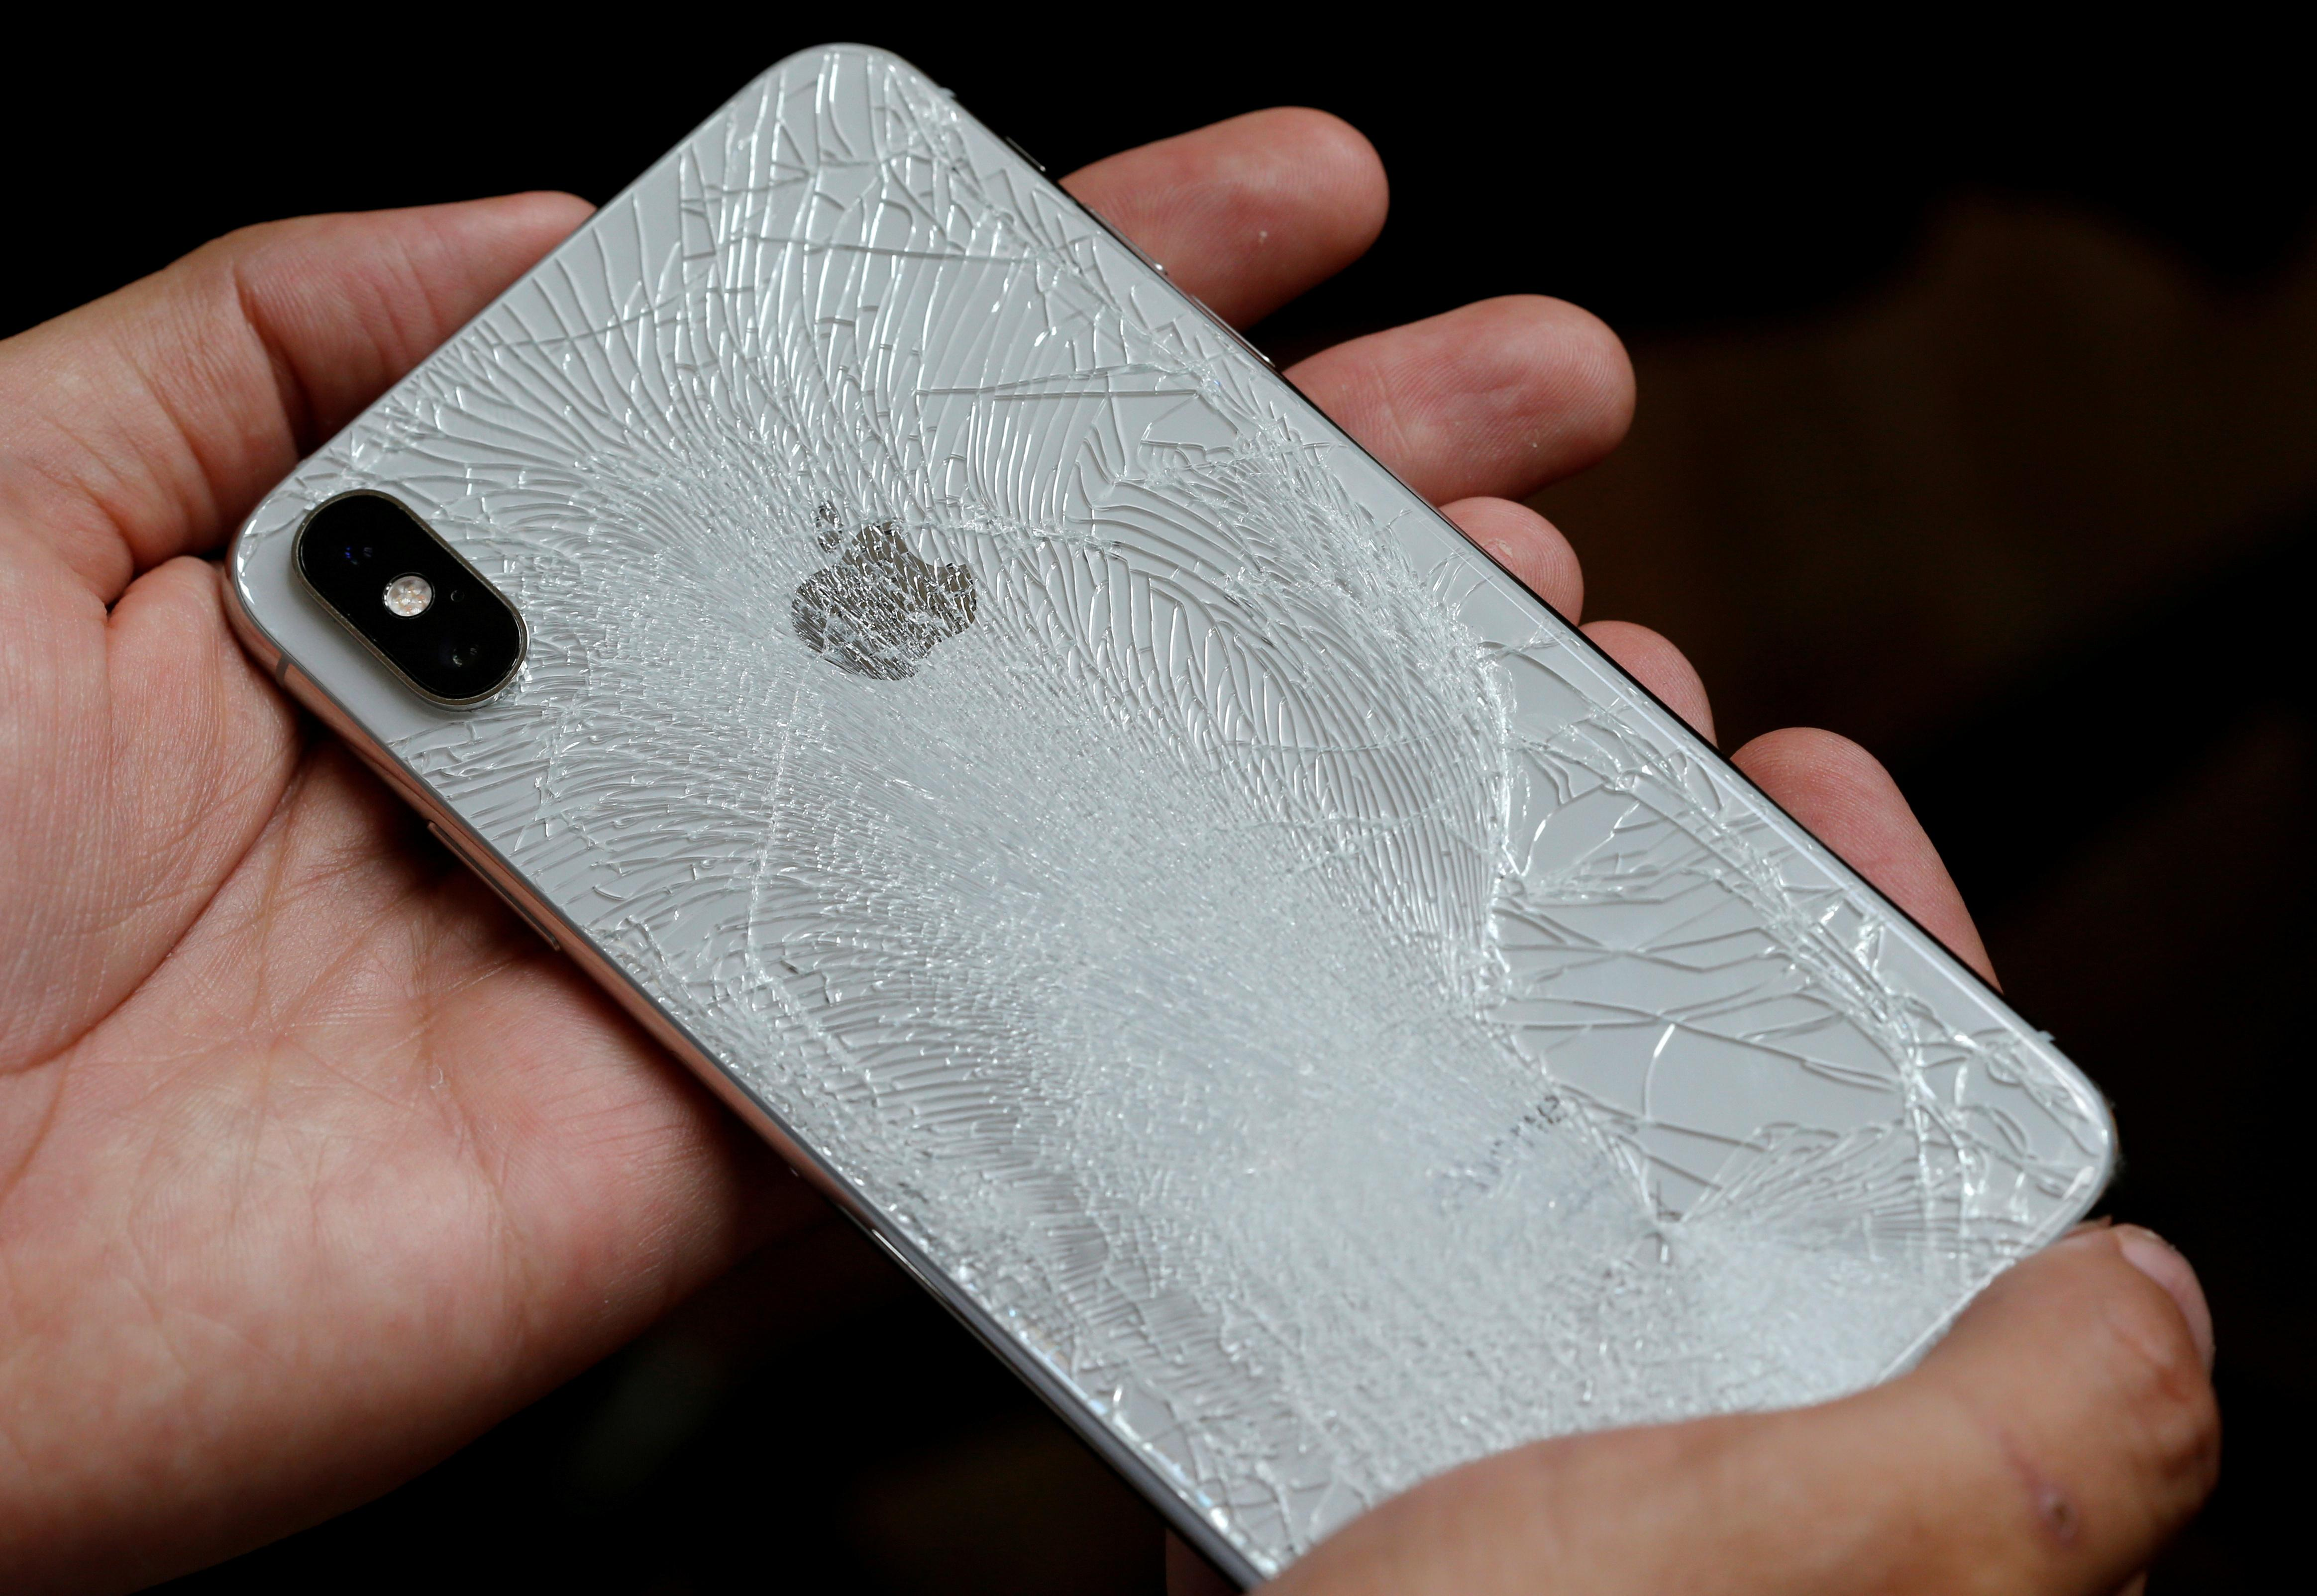 Apple to supply parts to independent repair shops for first time